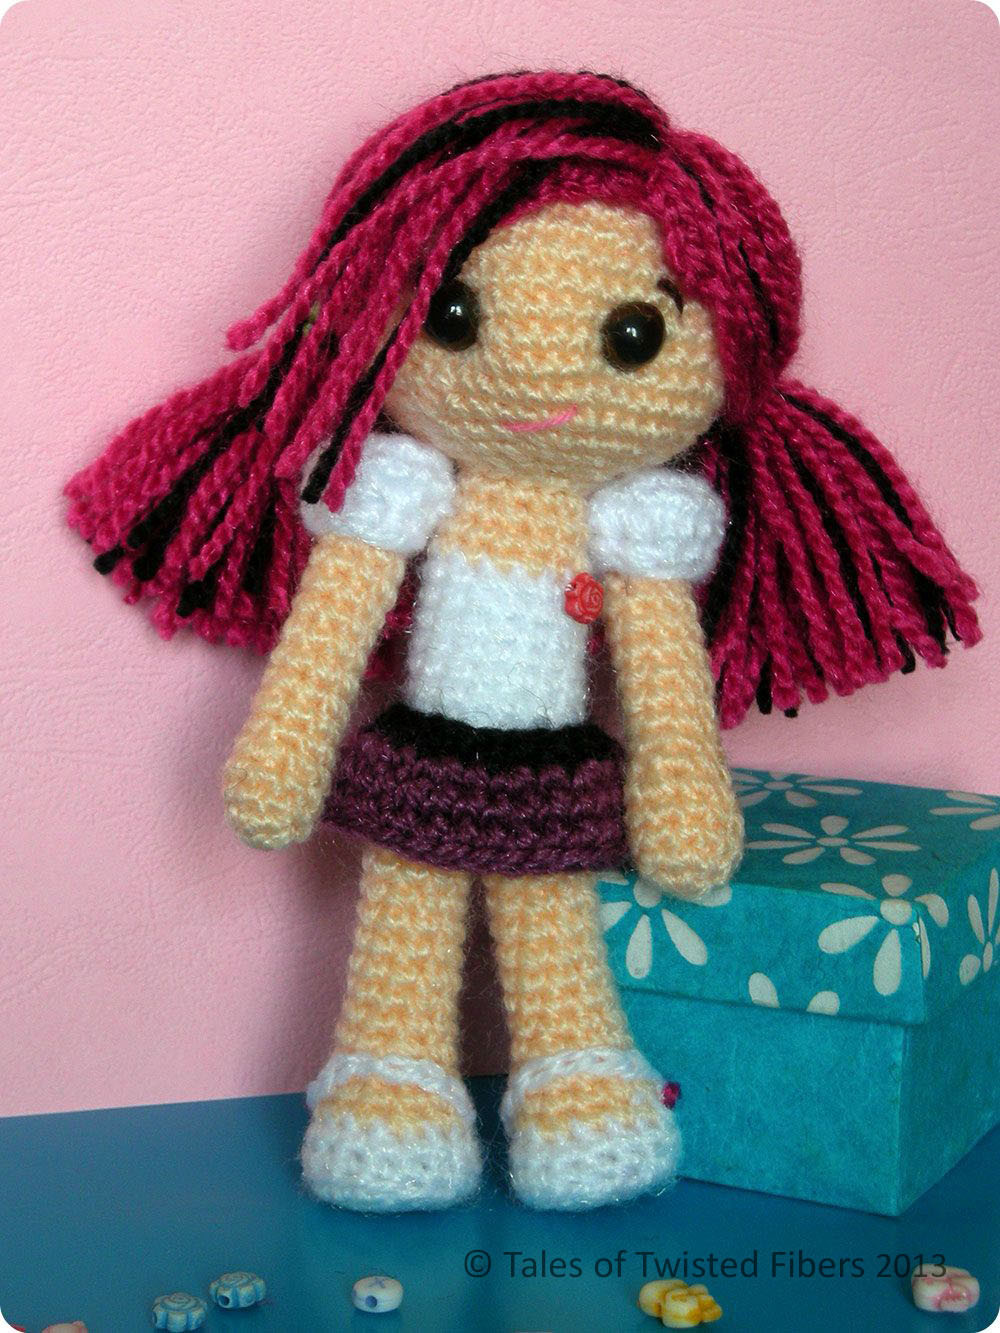 Doll Patterns Beautiful Amy the Amigurumi Doll Free Pattern – Tales Of Twisted Fibers Of Doll Patterns Unique Knitting Patterns Dolls Clothes